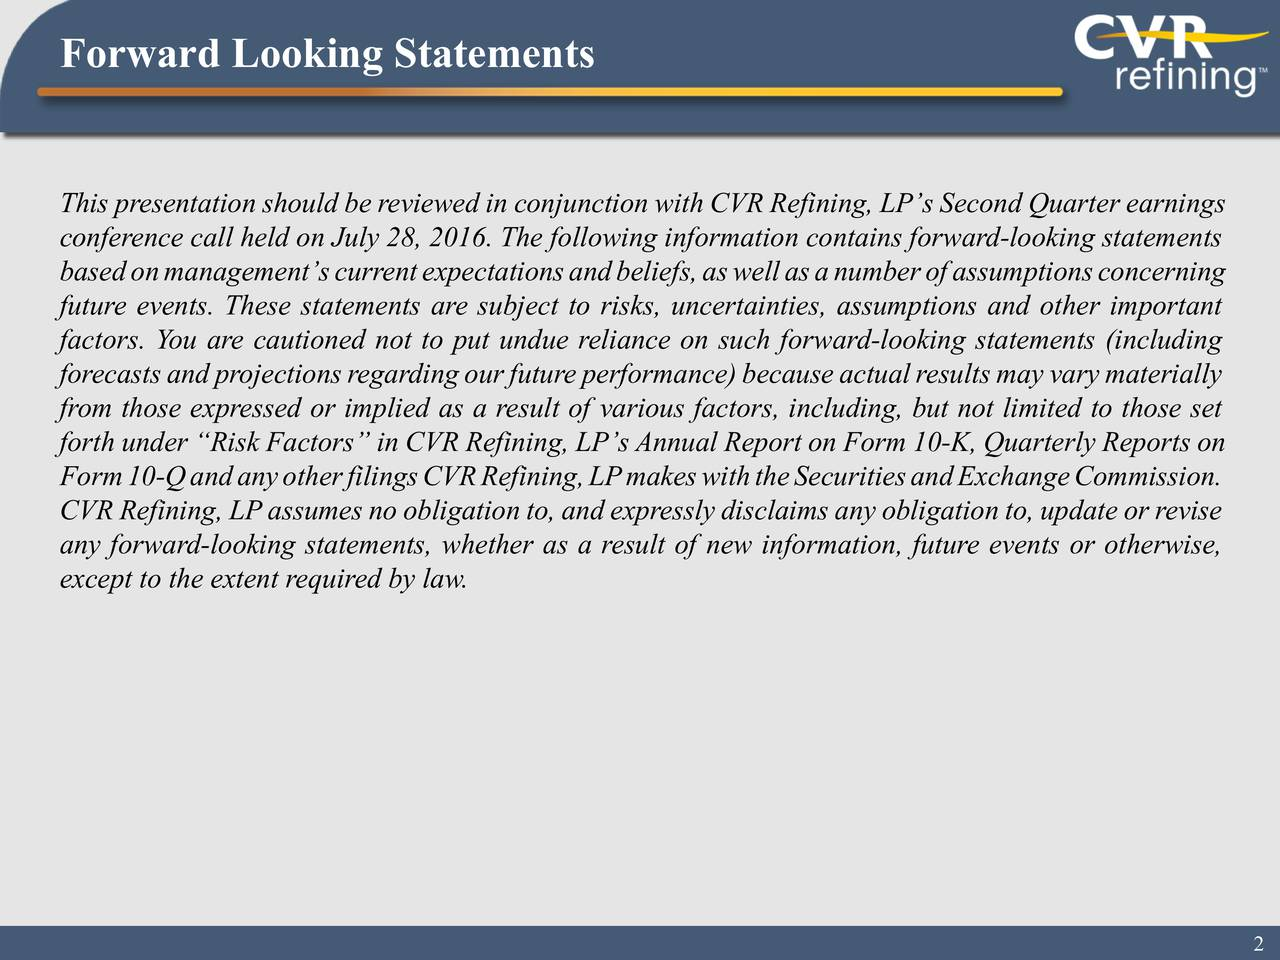 This presentation should be reviewed in conjunction with CVR Refining, LPs Second Quarter earnings conference call held on July28, 2016. The following information contains forward-looking statements basedonmanagementscurrentexpectationsandbeliefs,aswellasanumberofassumptionsconcerning future events. These statements are subject to risks, uncertainties, assumptions and other important factors. You are cautioned not to put undue reliance on such forward-looking statements (including forecastsandprojectionsregardingourfutureperformance)becauseactualresultsmayvarymaterially from those expressed or implied as a result of various factors, including, but not limited to those set forth under Risk Factors in CVR Refining, LPs Annual Report on Form 10-K, Quarterly Reports on Form10-QandanyotherfilingsCVRRefining,LPmakeswiththeSecuritiesandExchangeCommission. CVR Refining, LPassumes no obligation to, and expressly disclaims any obligation to, update or revise any forward-looking statements, whether as a result of new information, future events or otherwise, except to the extent required by law.